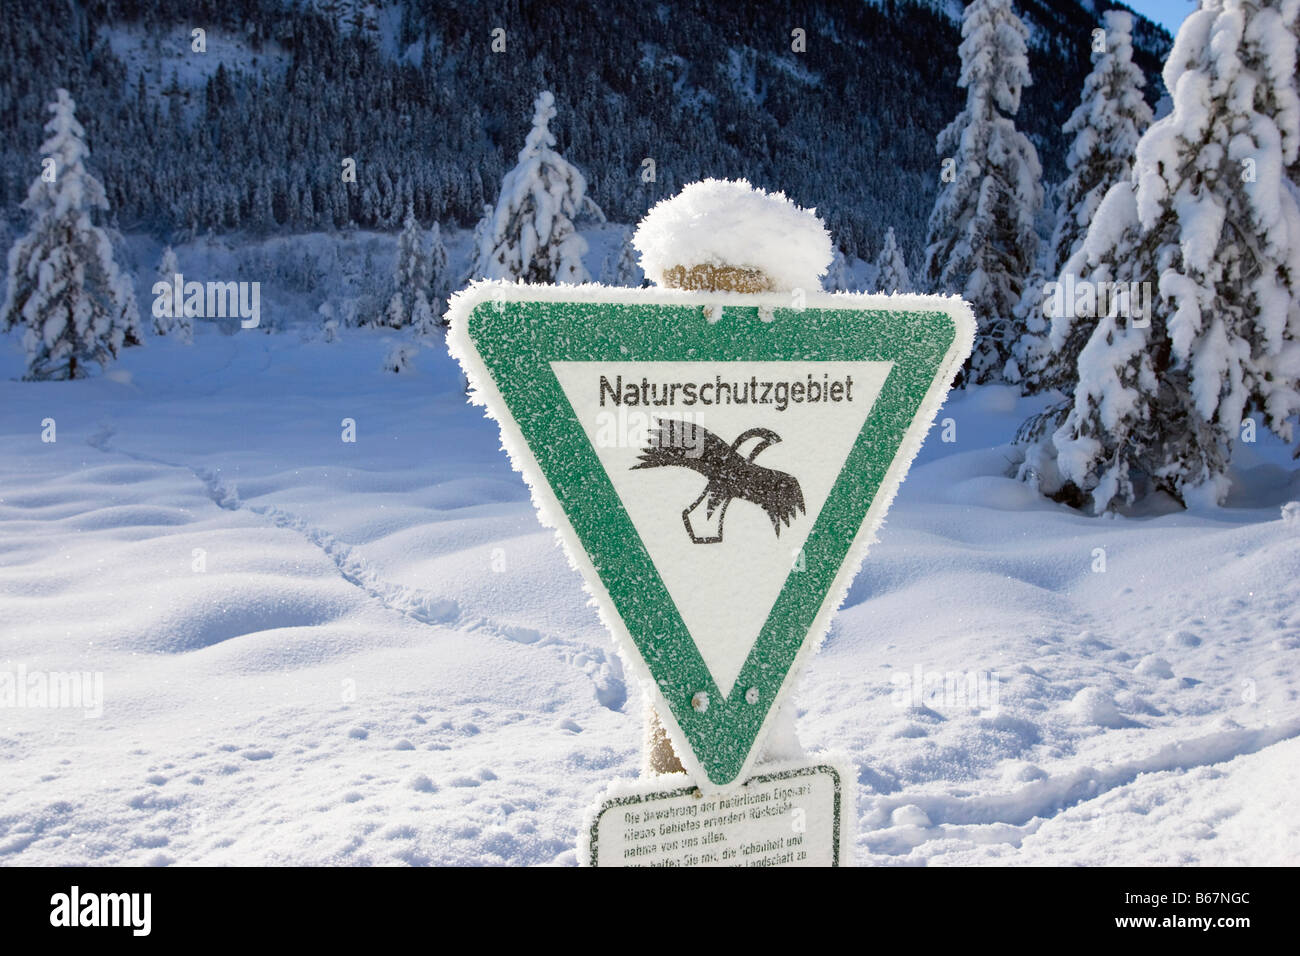 Nature reserve, sign with whitefrost, Upper Bavaria, Germany Stock Photo